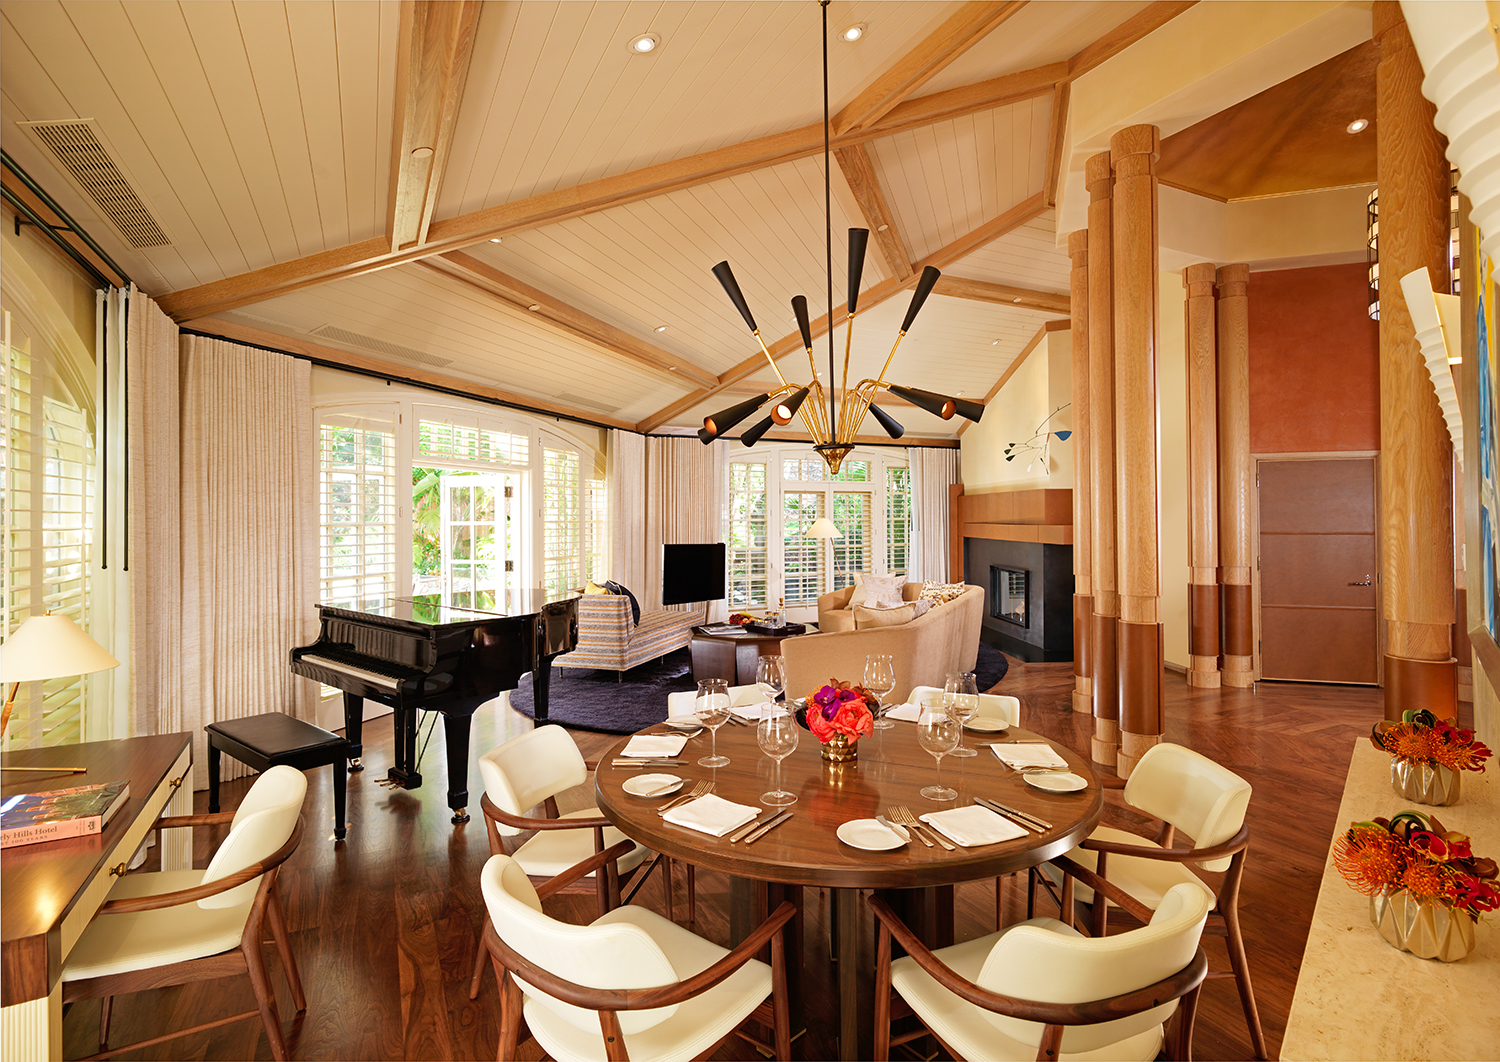 The centerpiece of the bungalow is the expansive and open parlour with lounge-style seating.